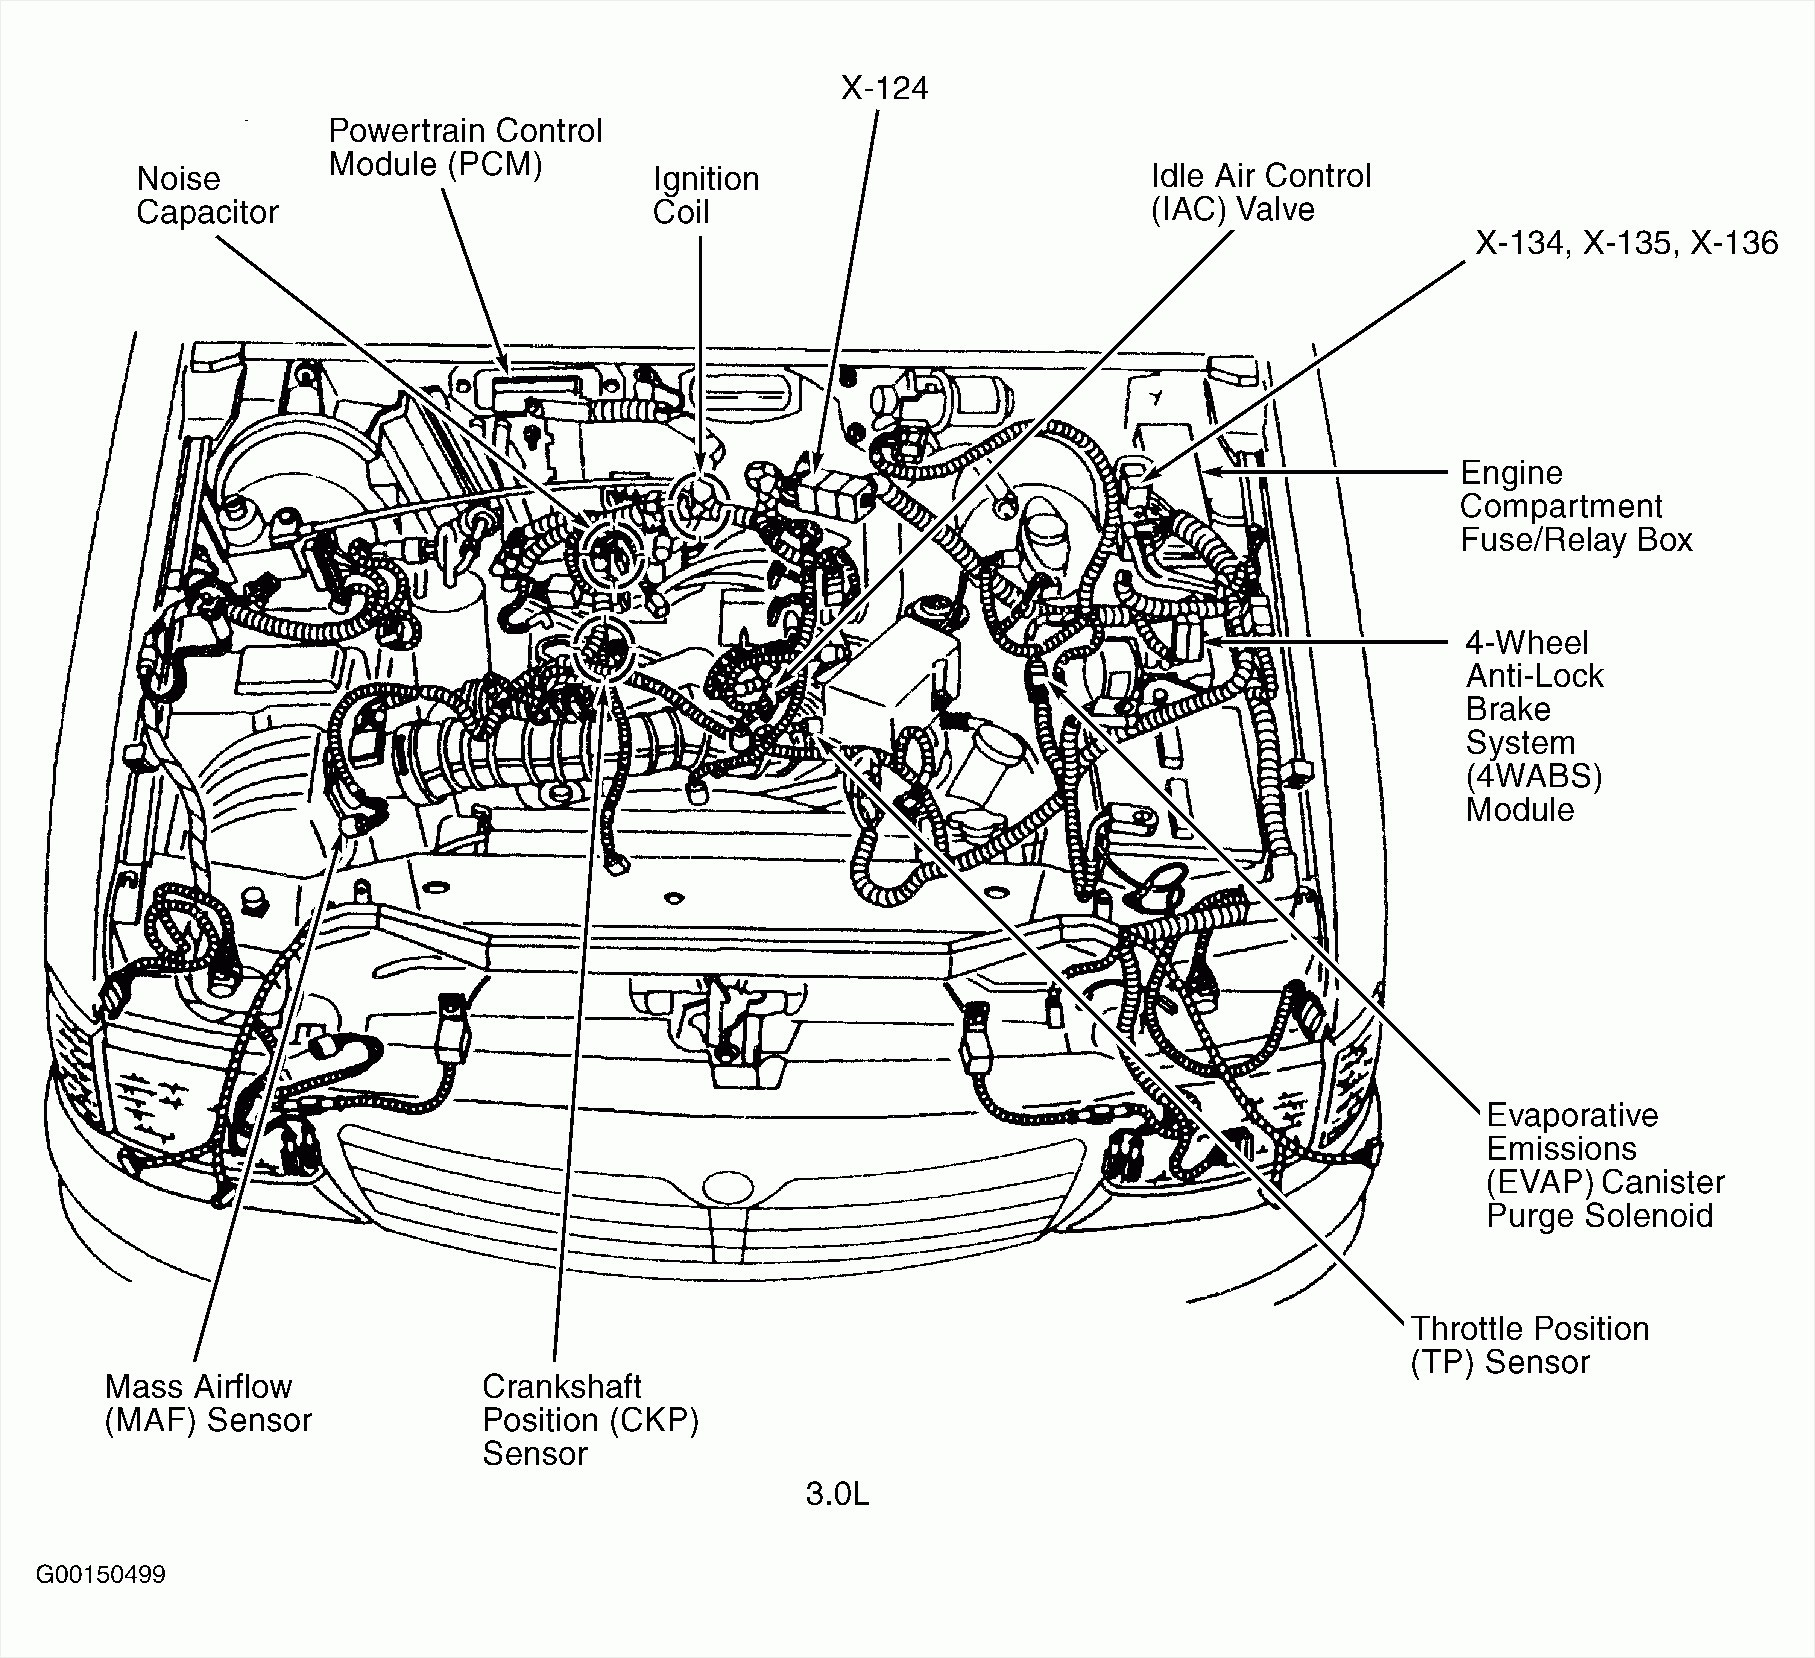 ford 3 8 v6 engine diagram ford mustang 3 8 engine diagram general wiring diagrams  ford mustang 3 8 engine diagram